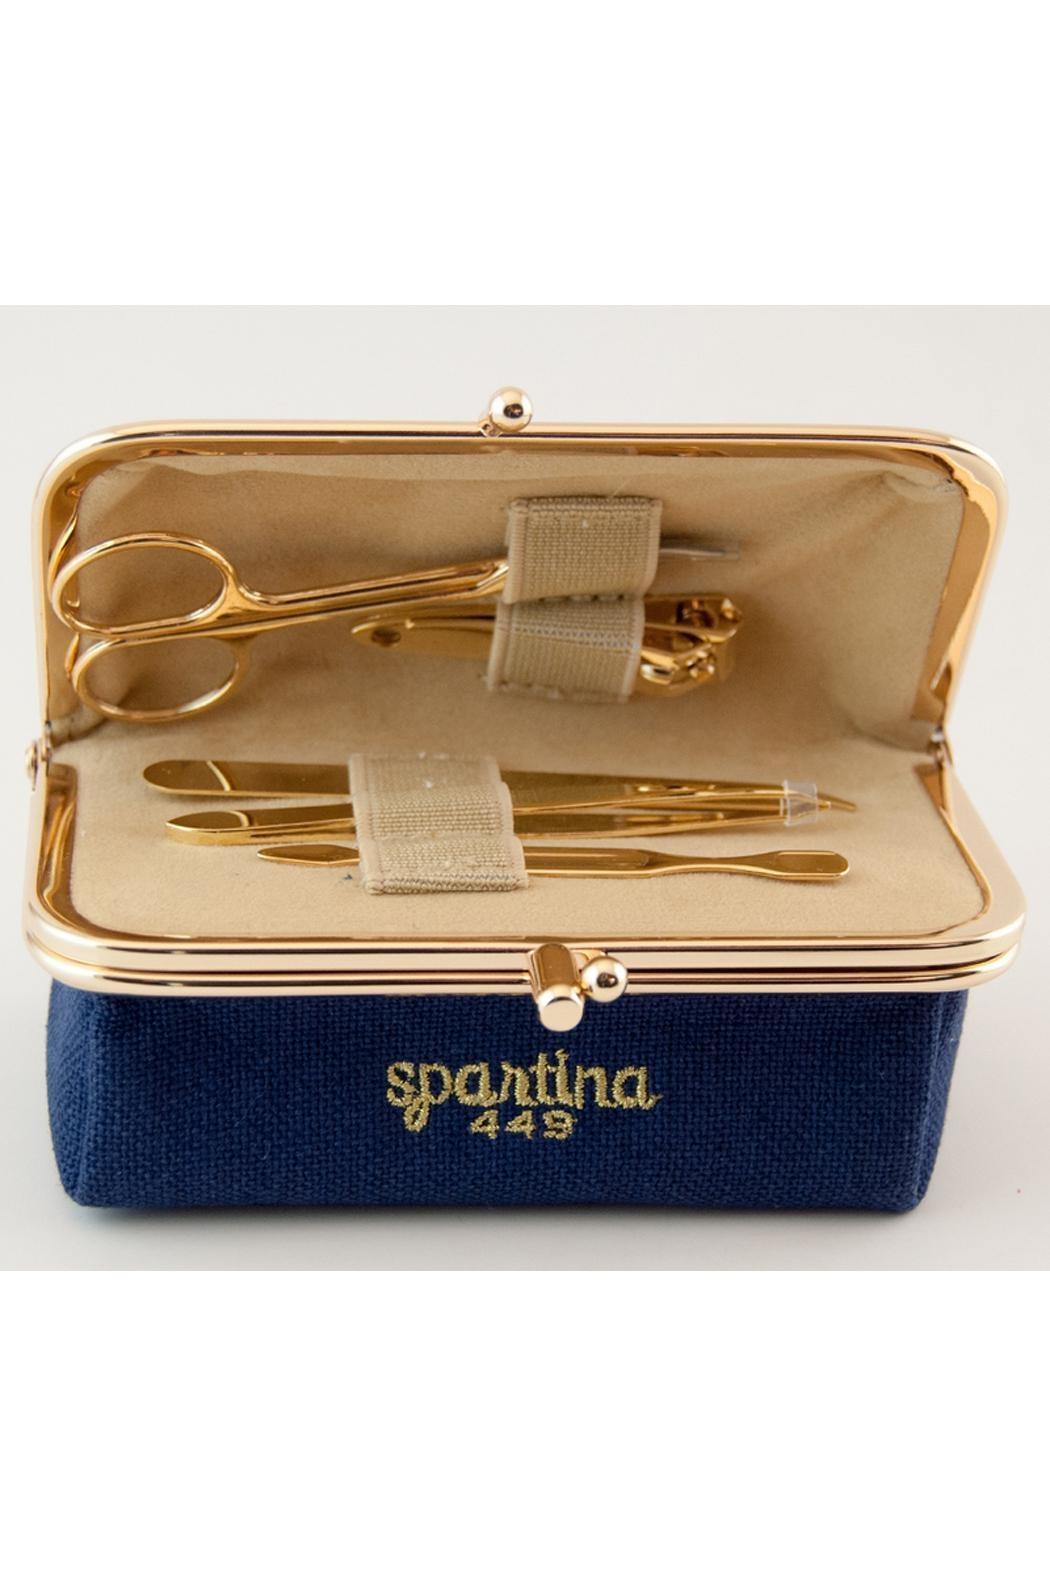 Spartina 449 Gold Manicure Set - Main Image